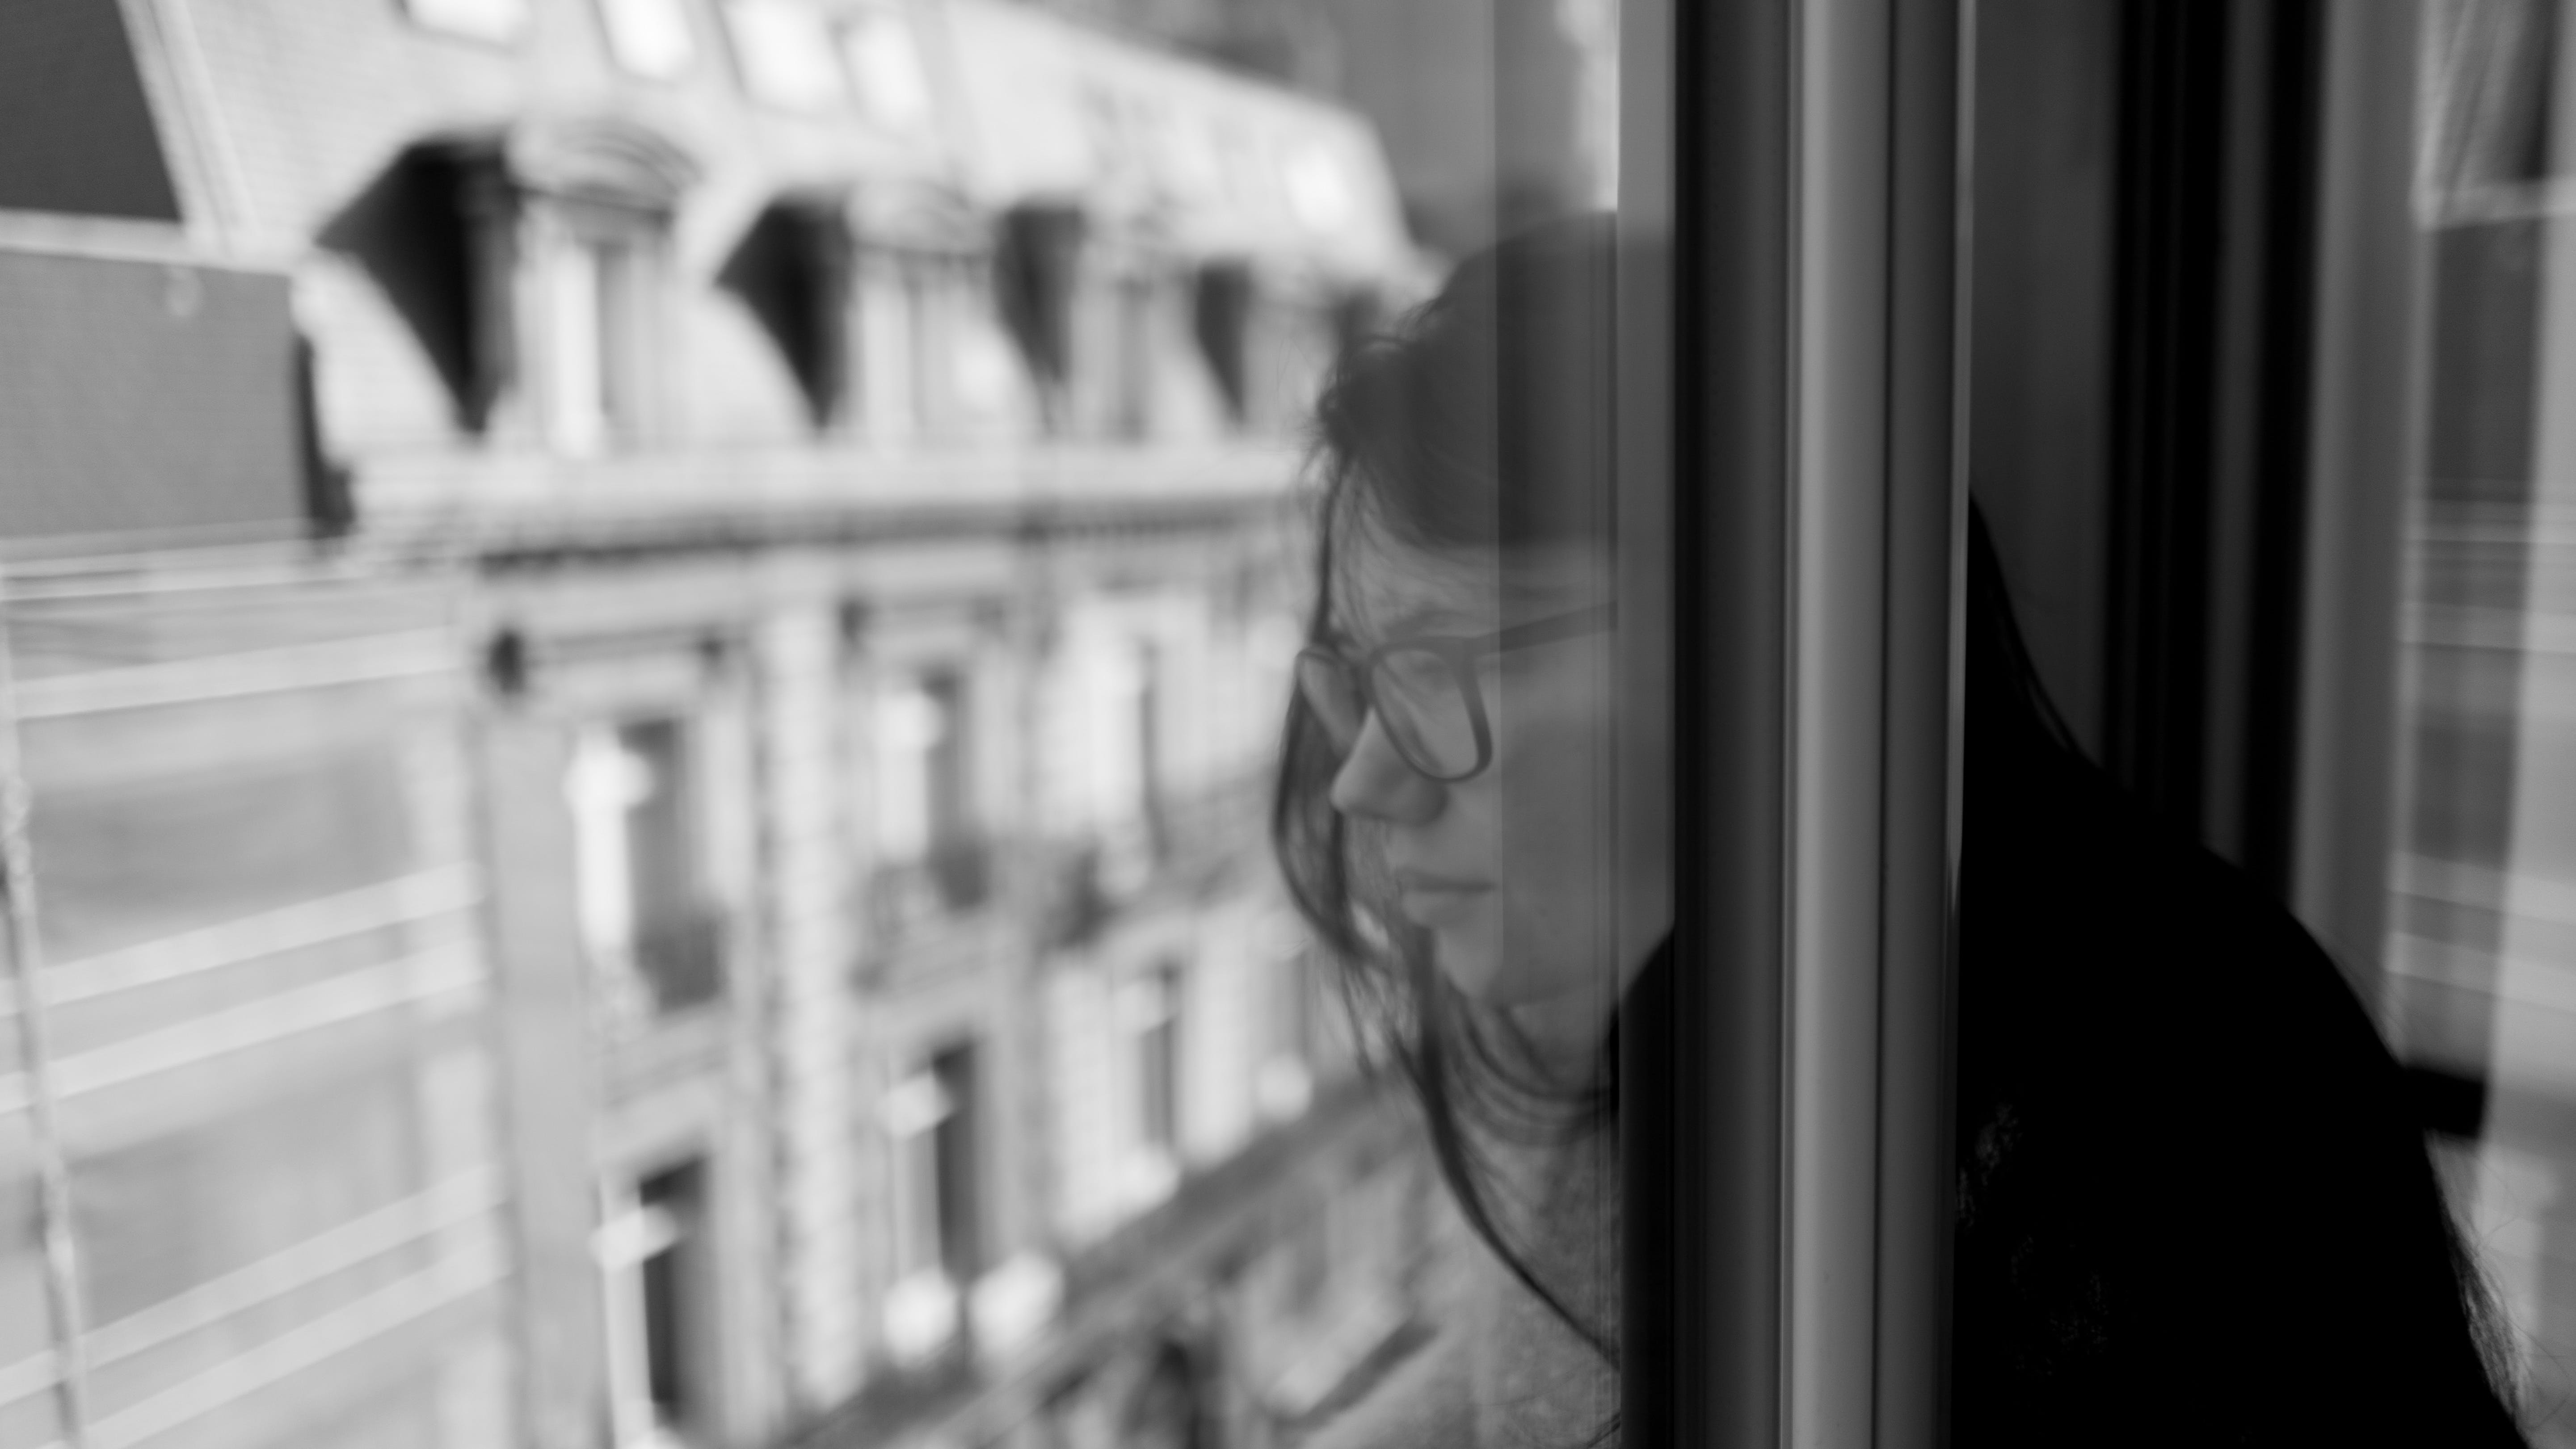 Free stock photo of beautiful women, black and white, ceiling window, female